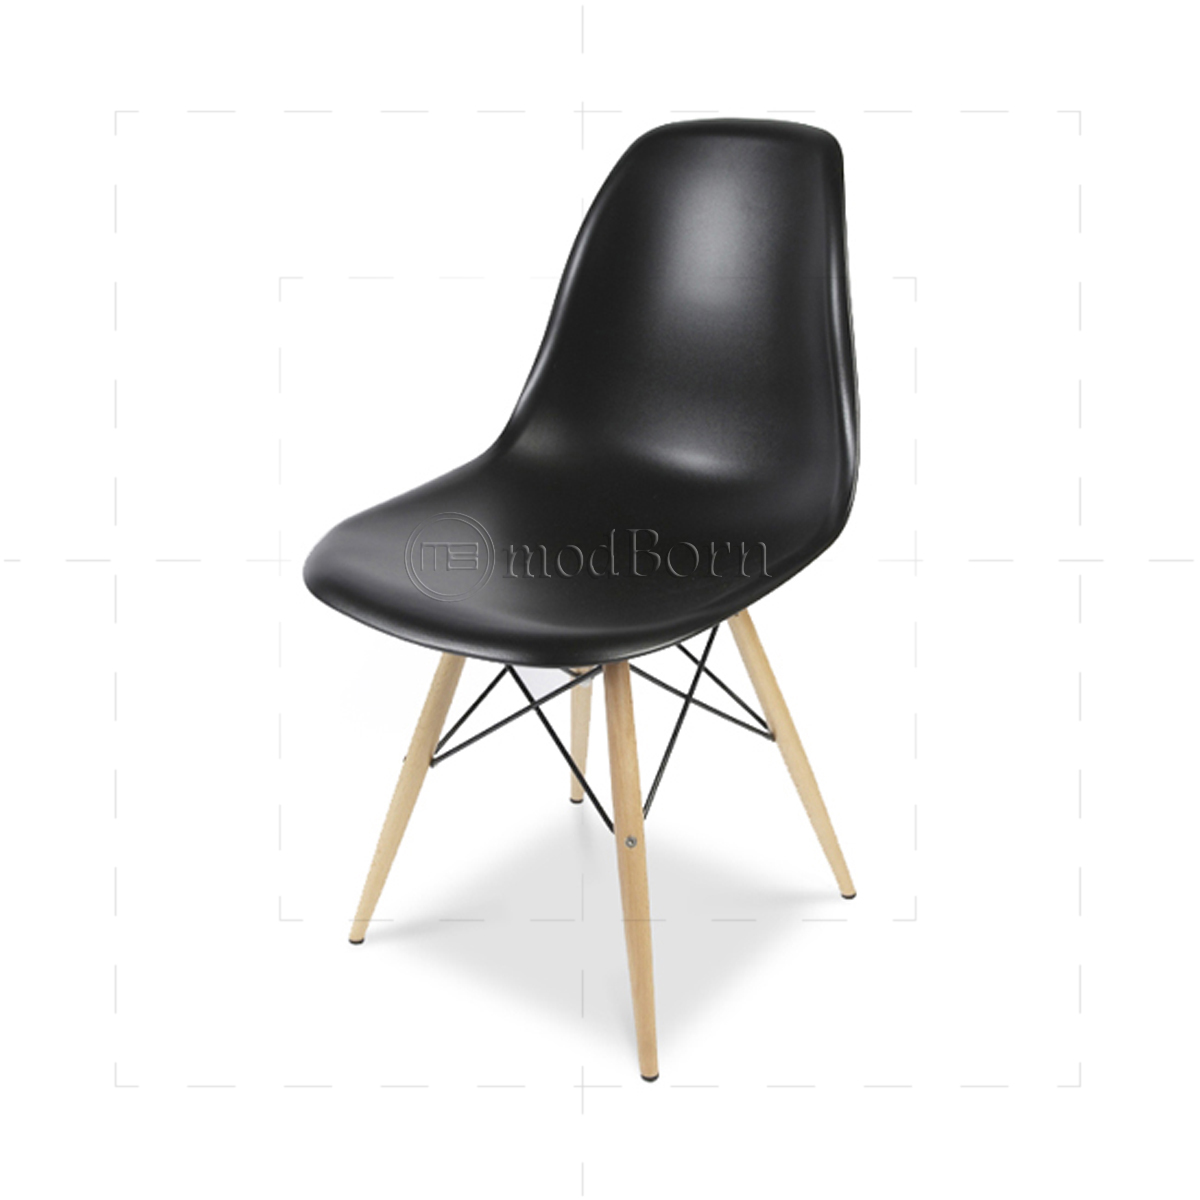 Eames style dining dsw chair black replica for Eames stuhl dsw reproduktion